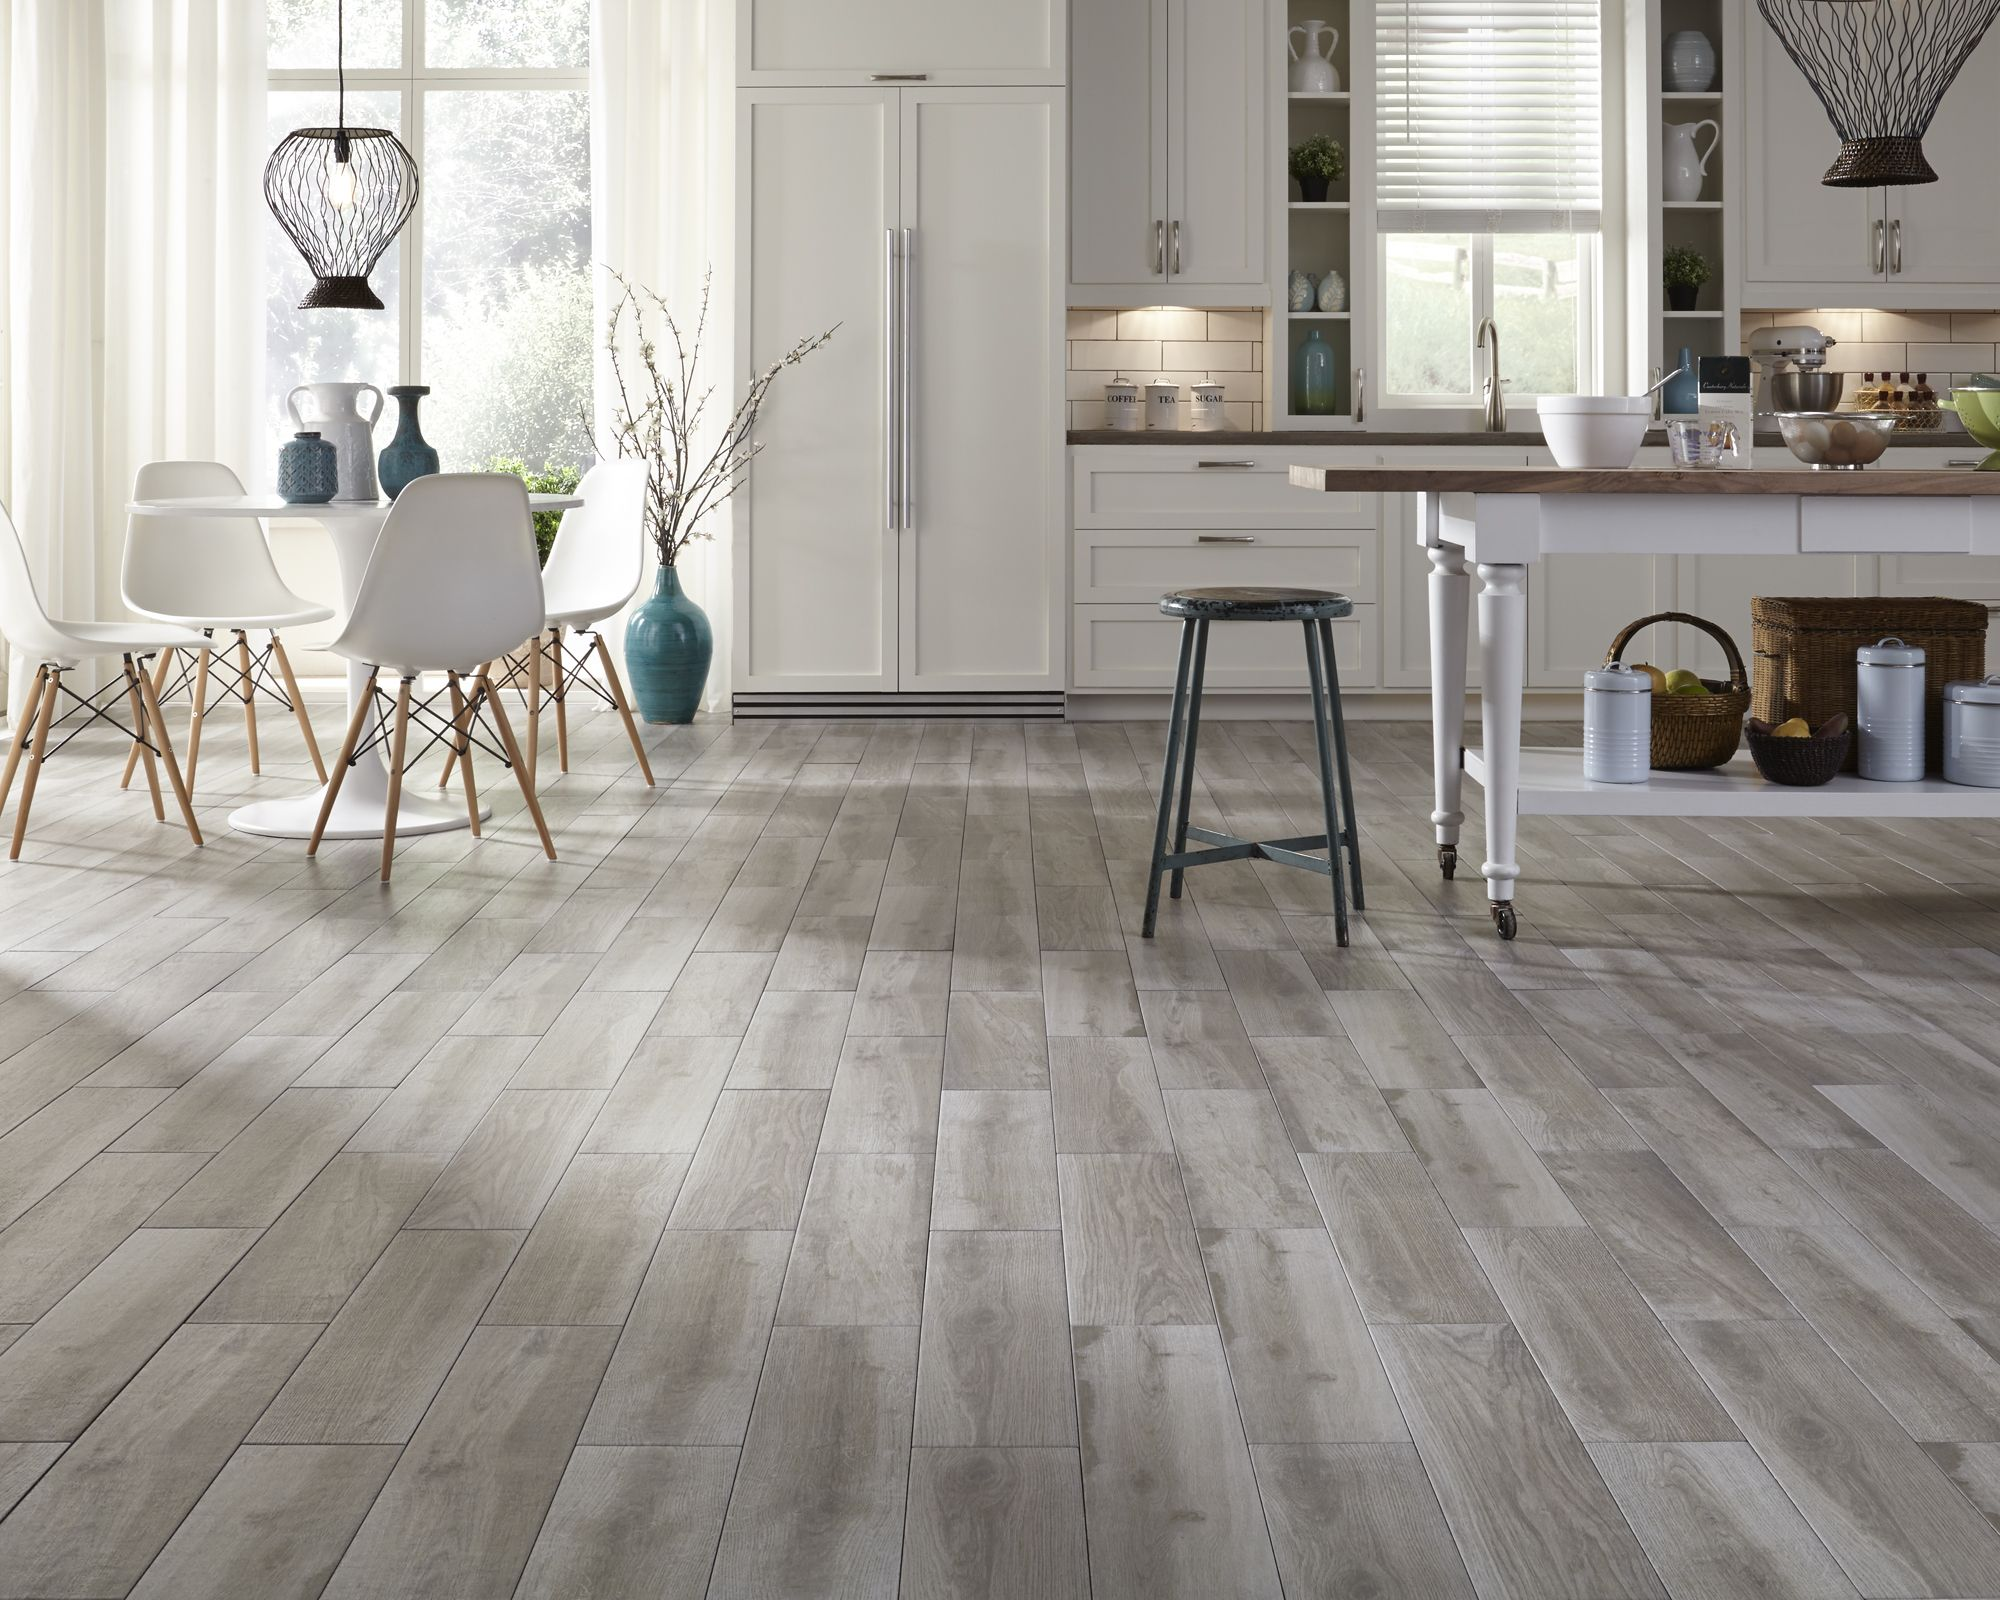 Flooring Options Kitchen Interested In Wood Look Tile Check Out Himba Gray Porcelain